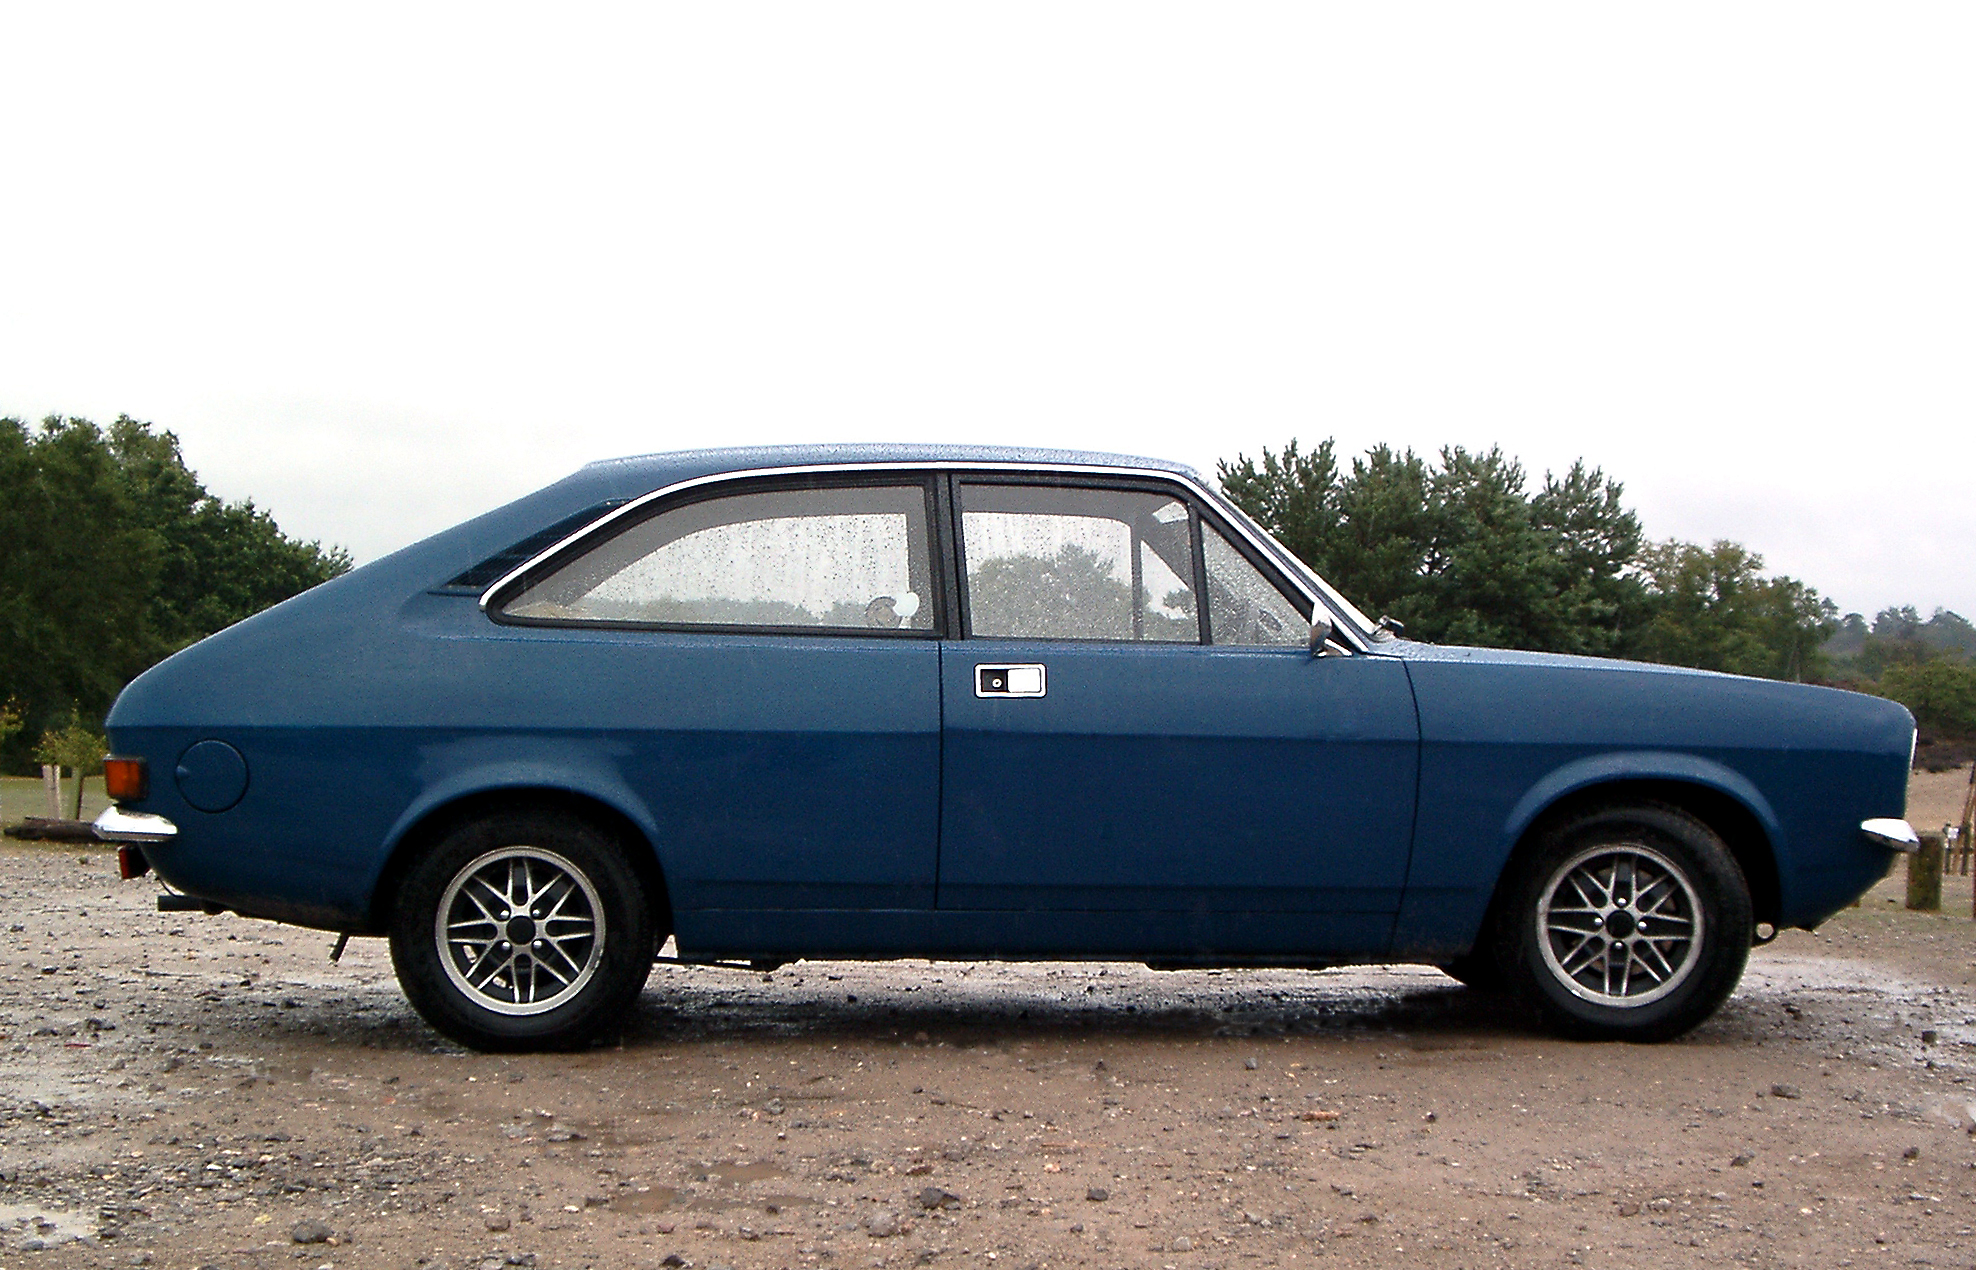 File:Morris Marina Coupe, Frensham Ponds, Surrey 13 August 2005 (1 ...